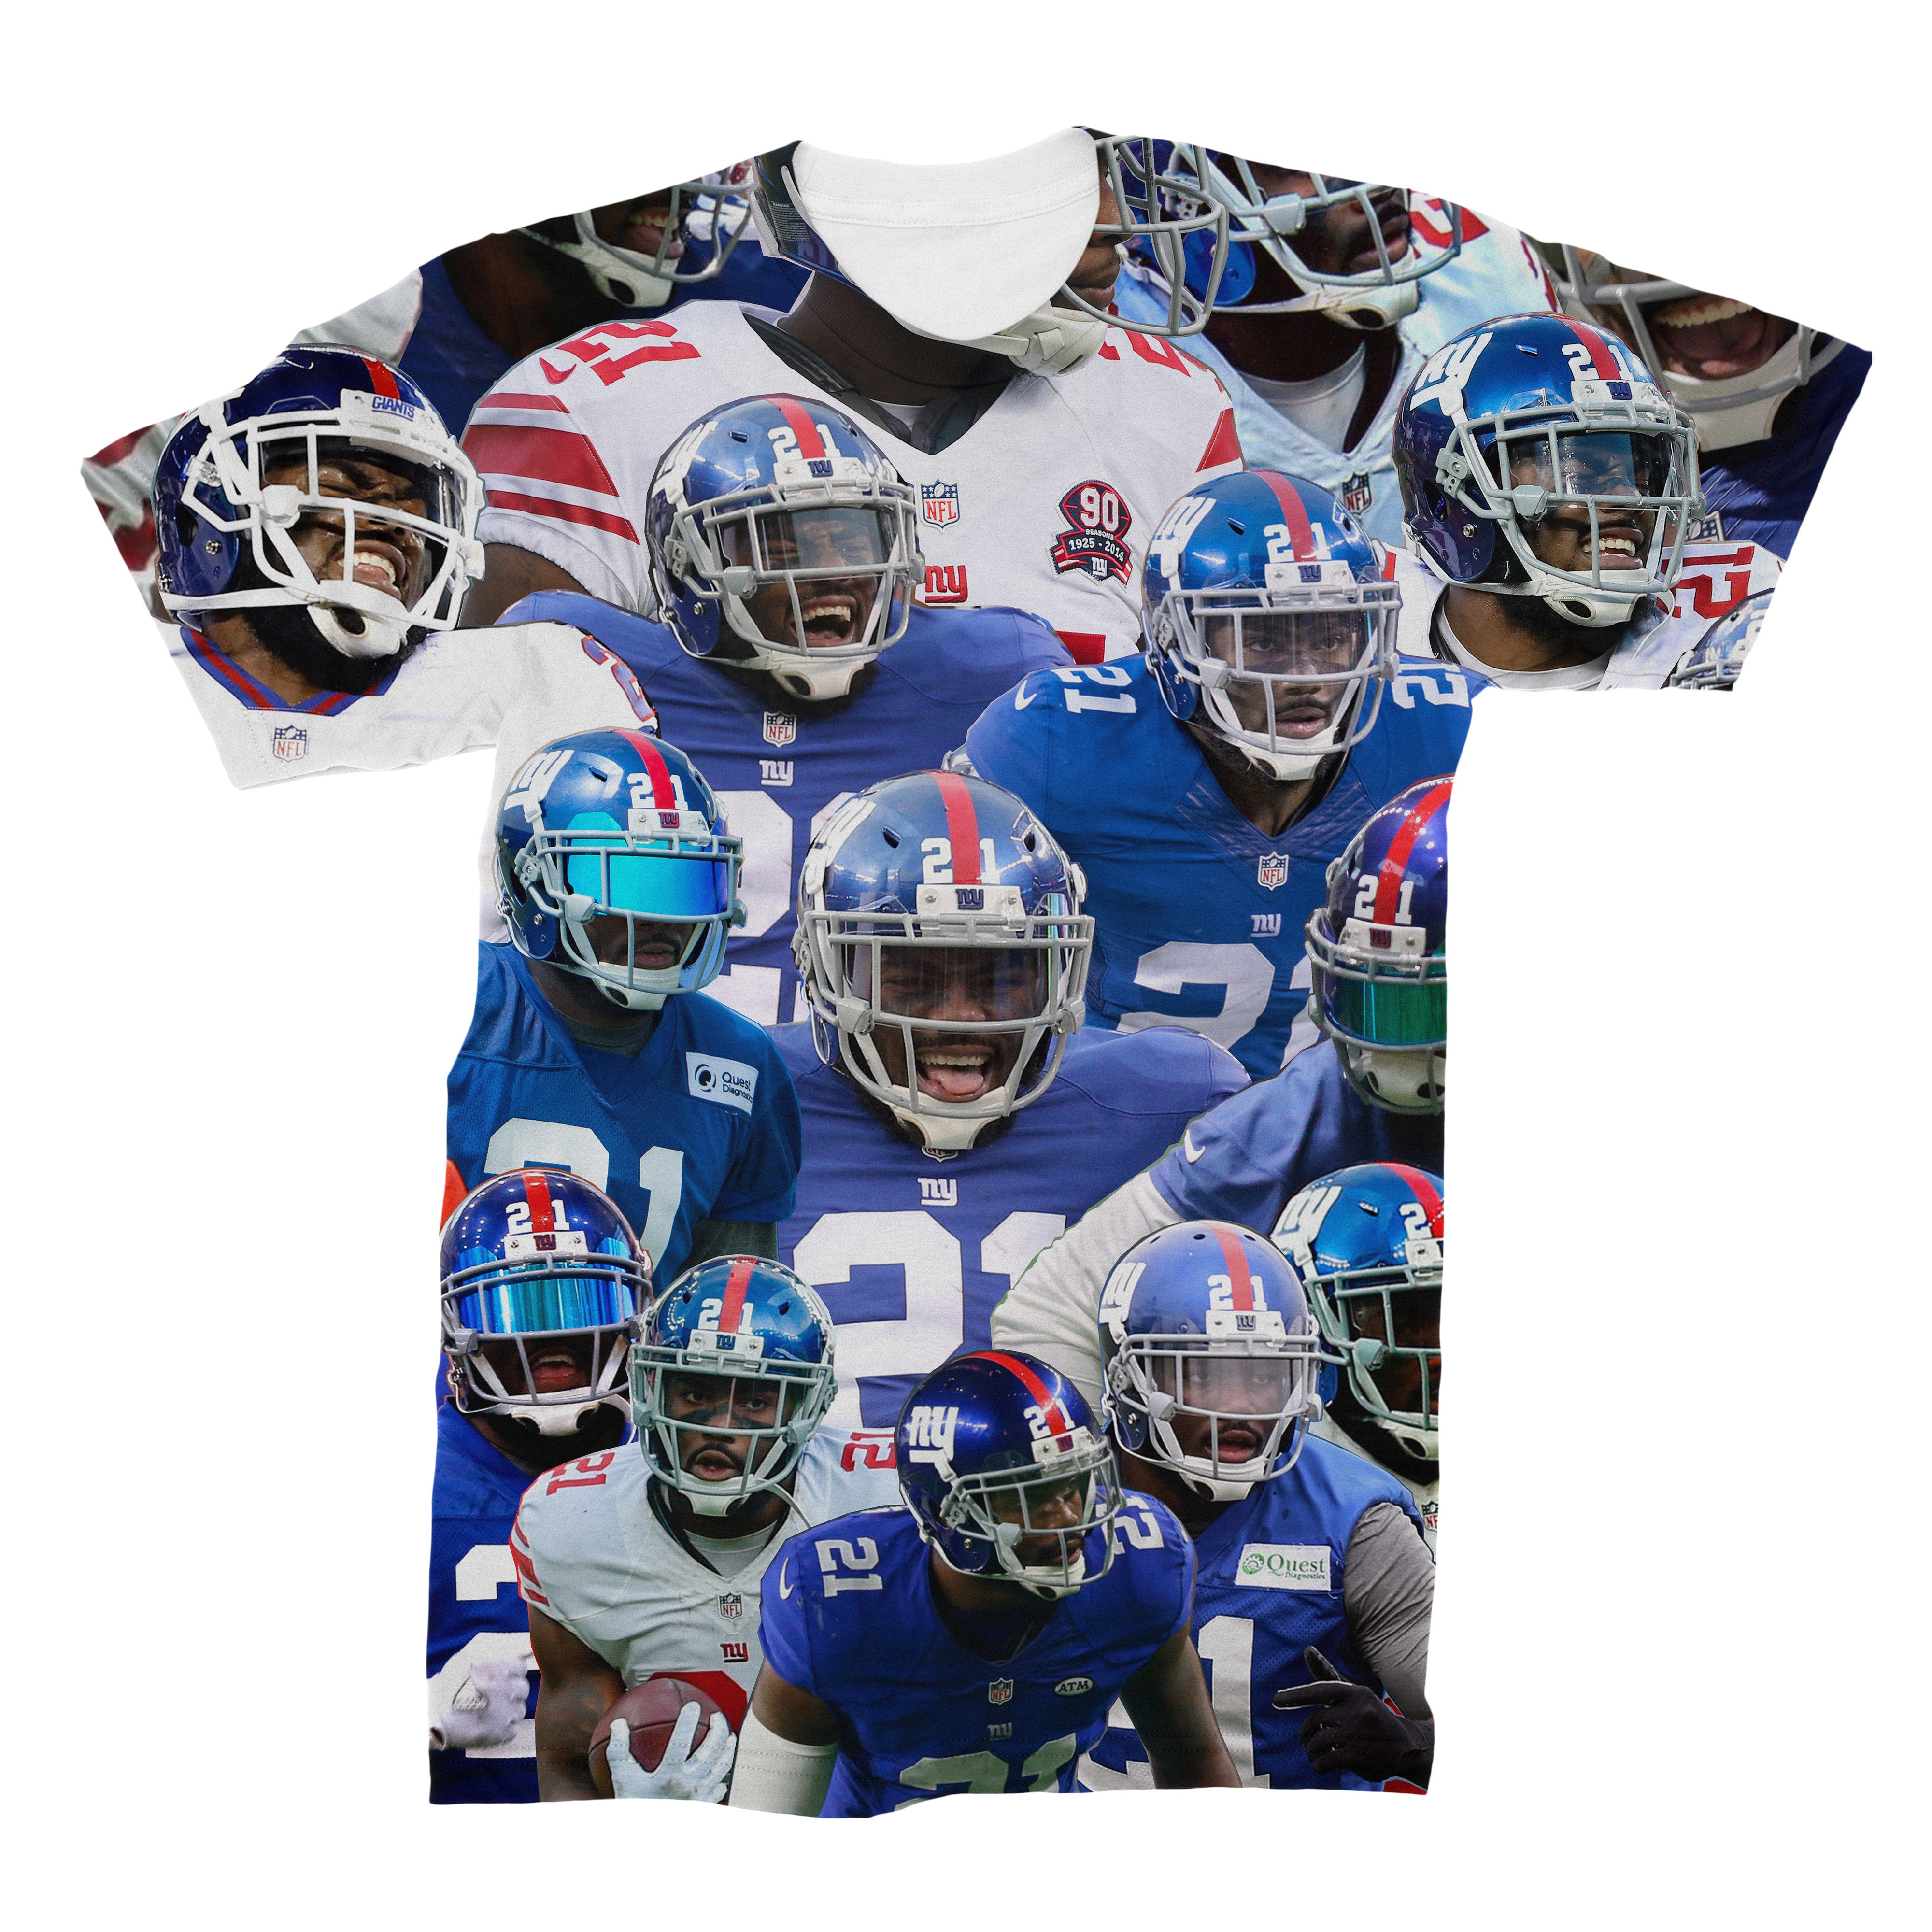 Landon Collins New York Giants Collage T Shirt